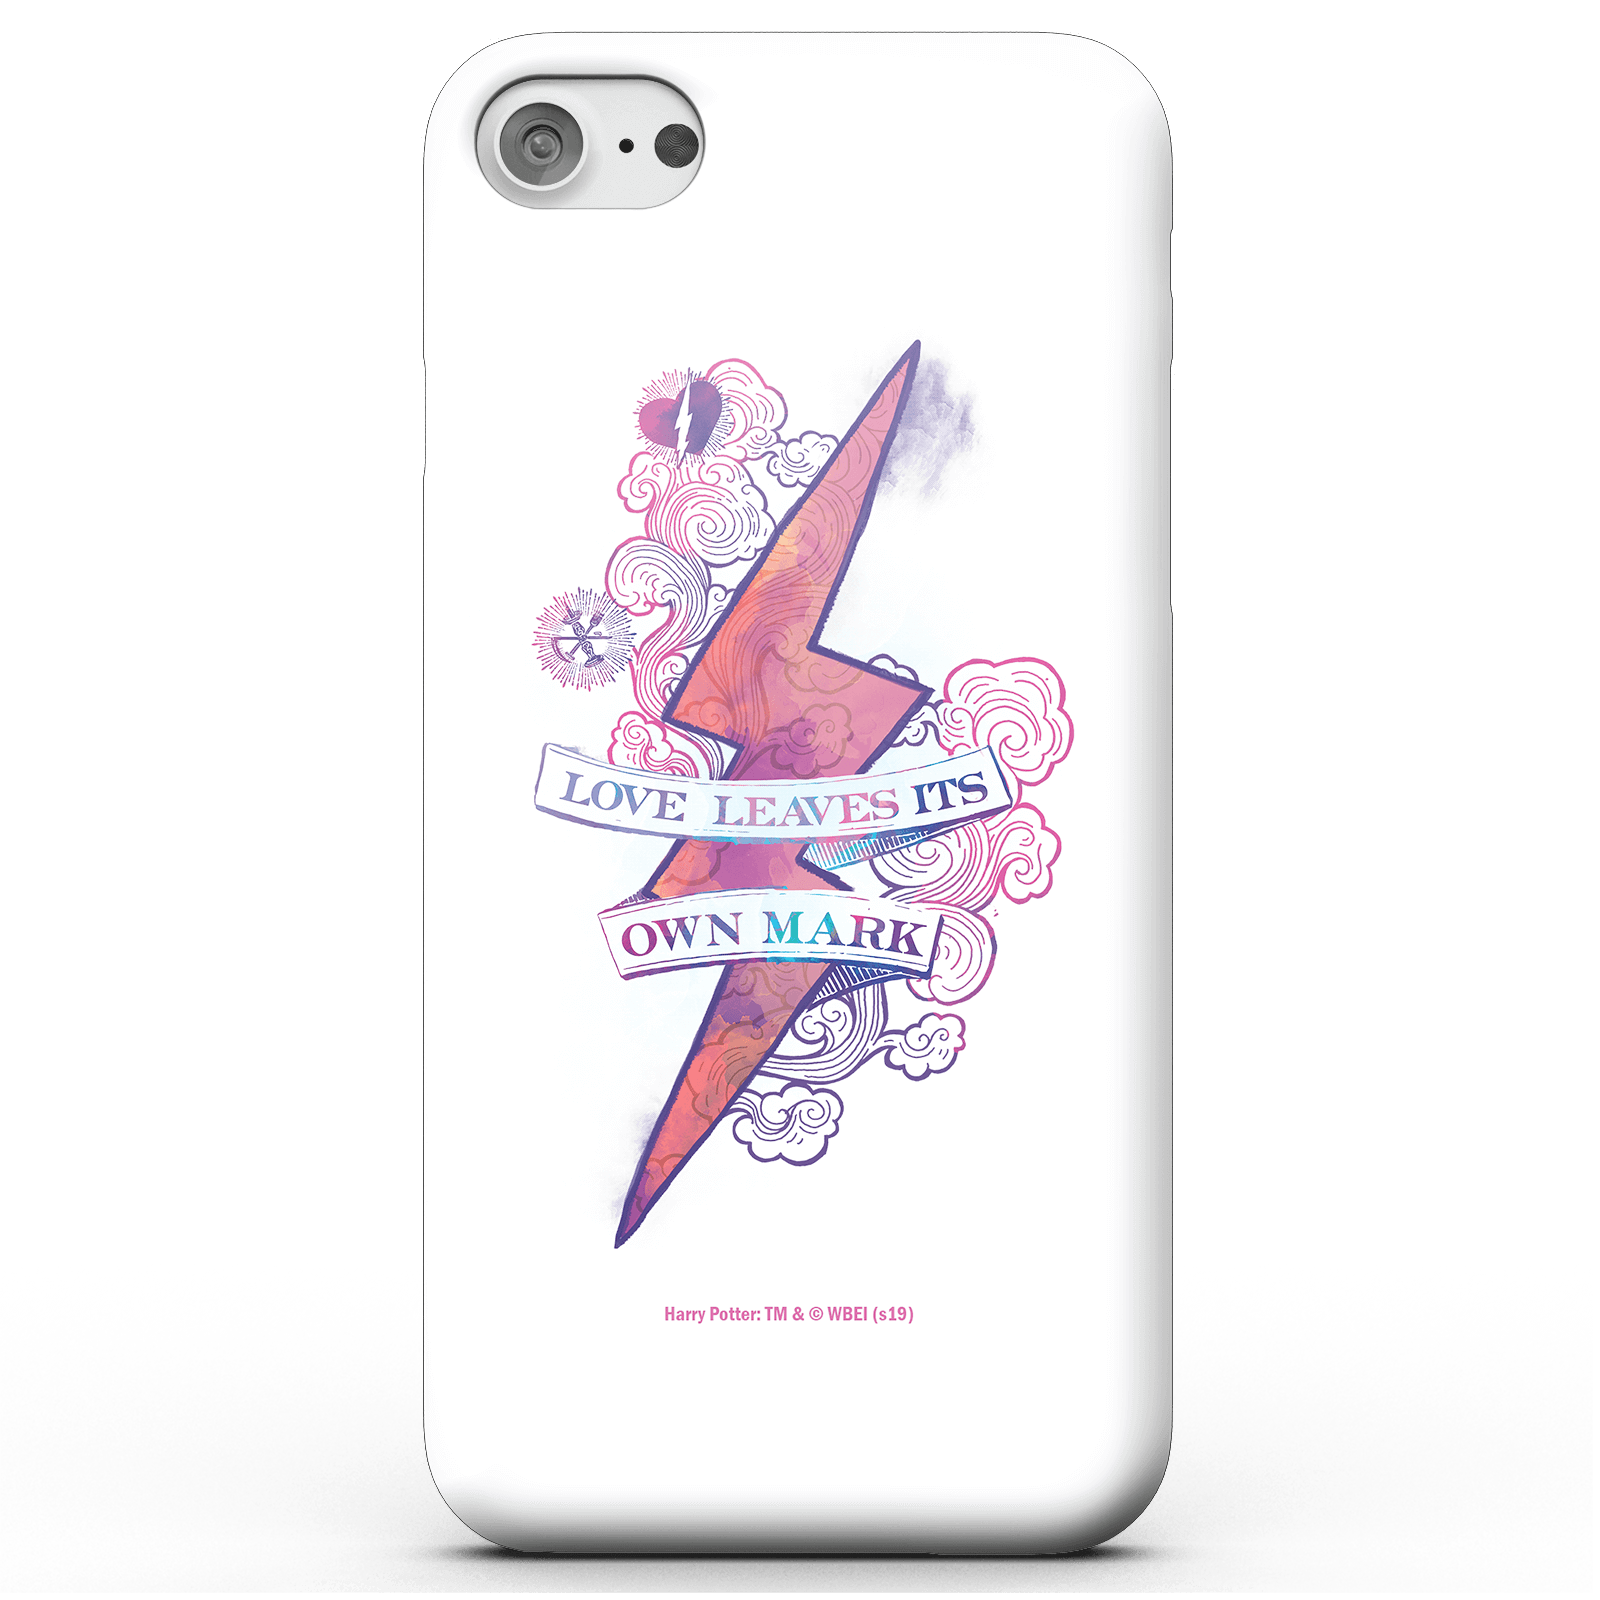 Funda Móvil Harry Potter Love Leaves Its Own Mark para iPhone y Android - iPhone 6 - Carcasa doble capa - Mate de Harry Potter